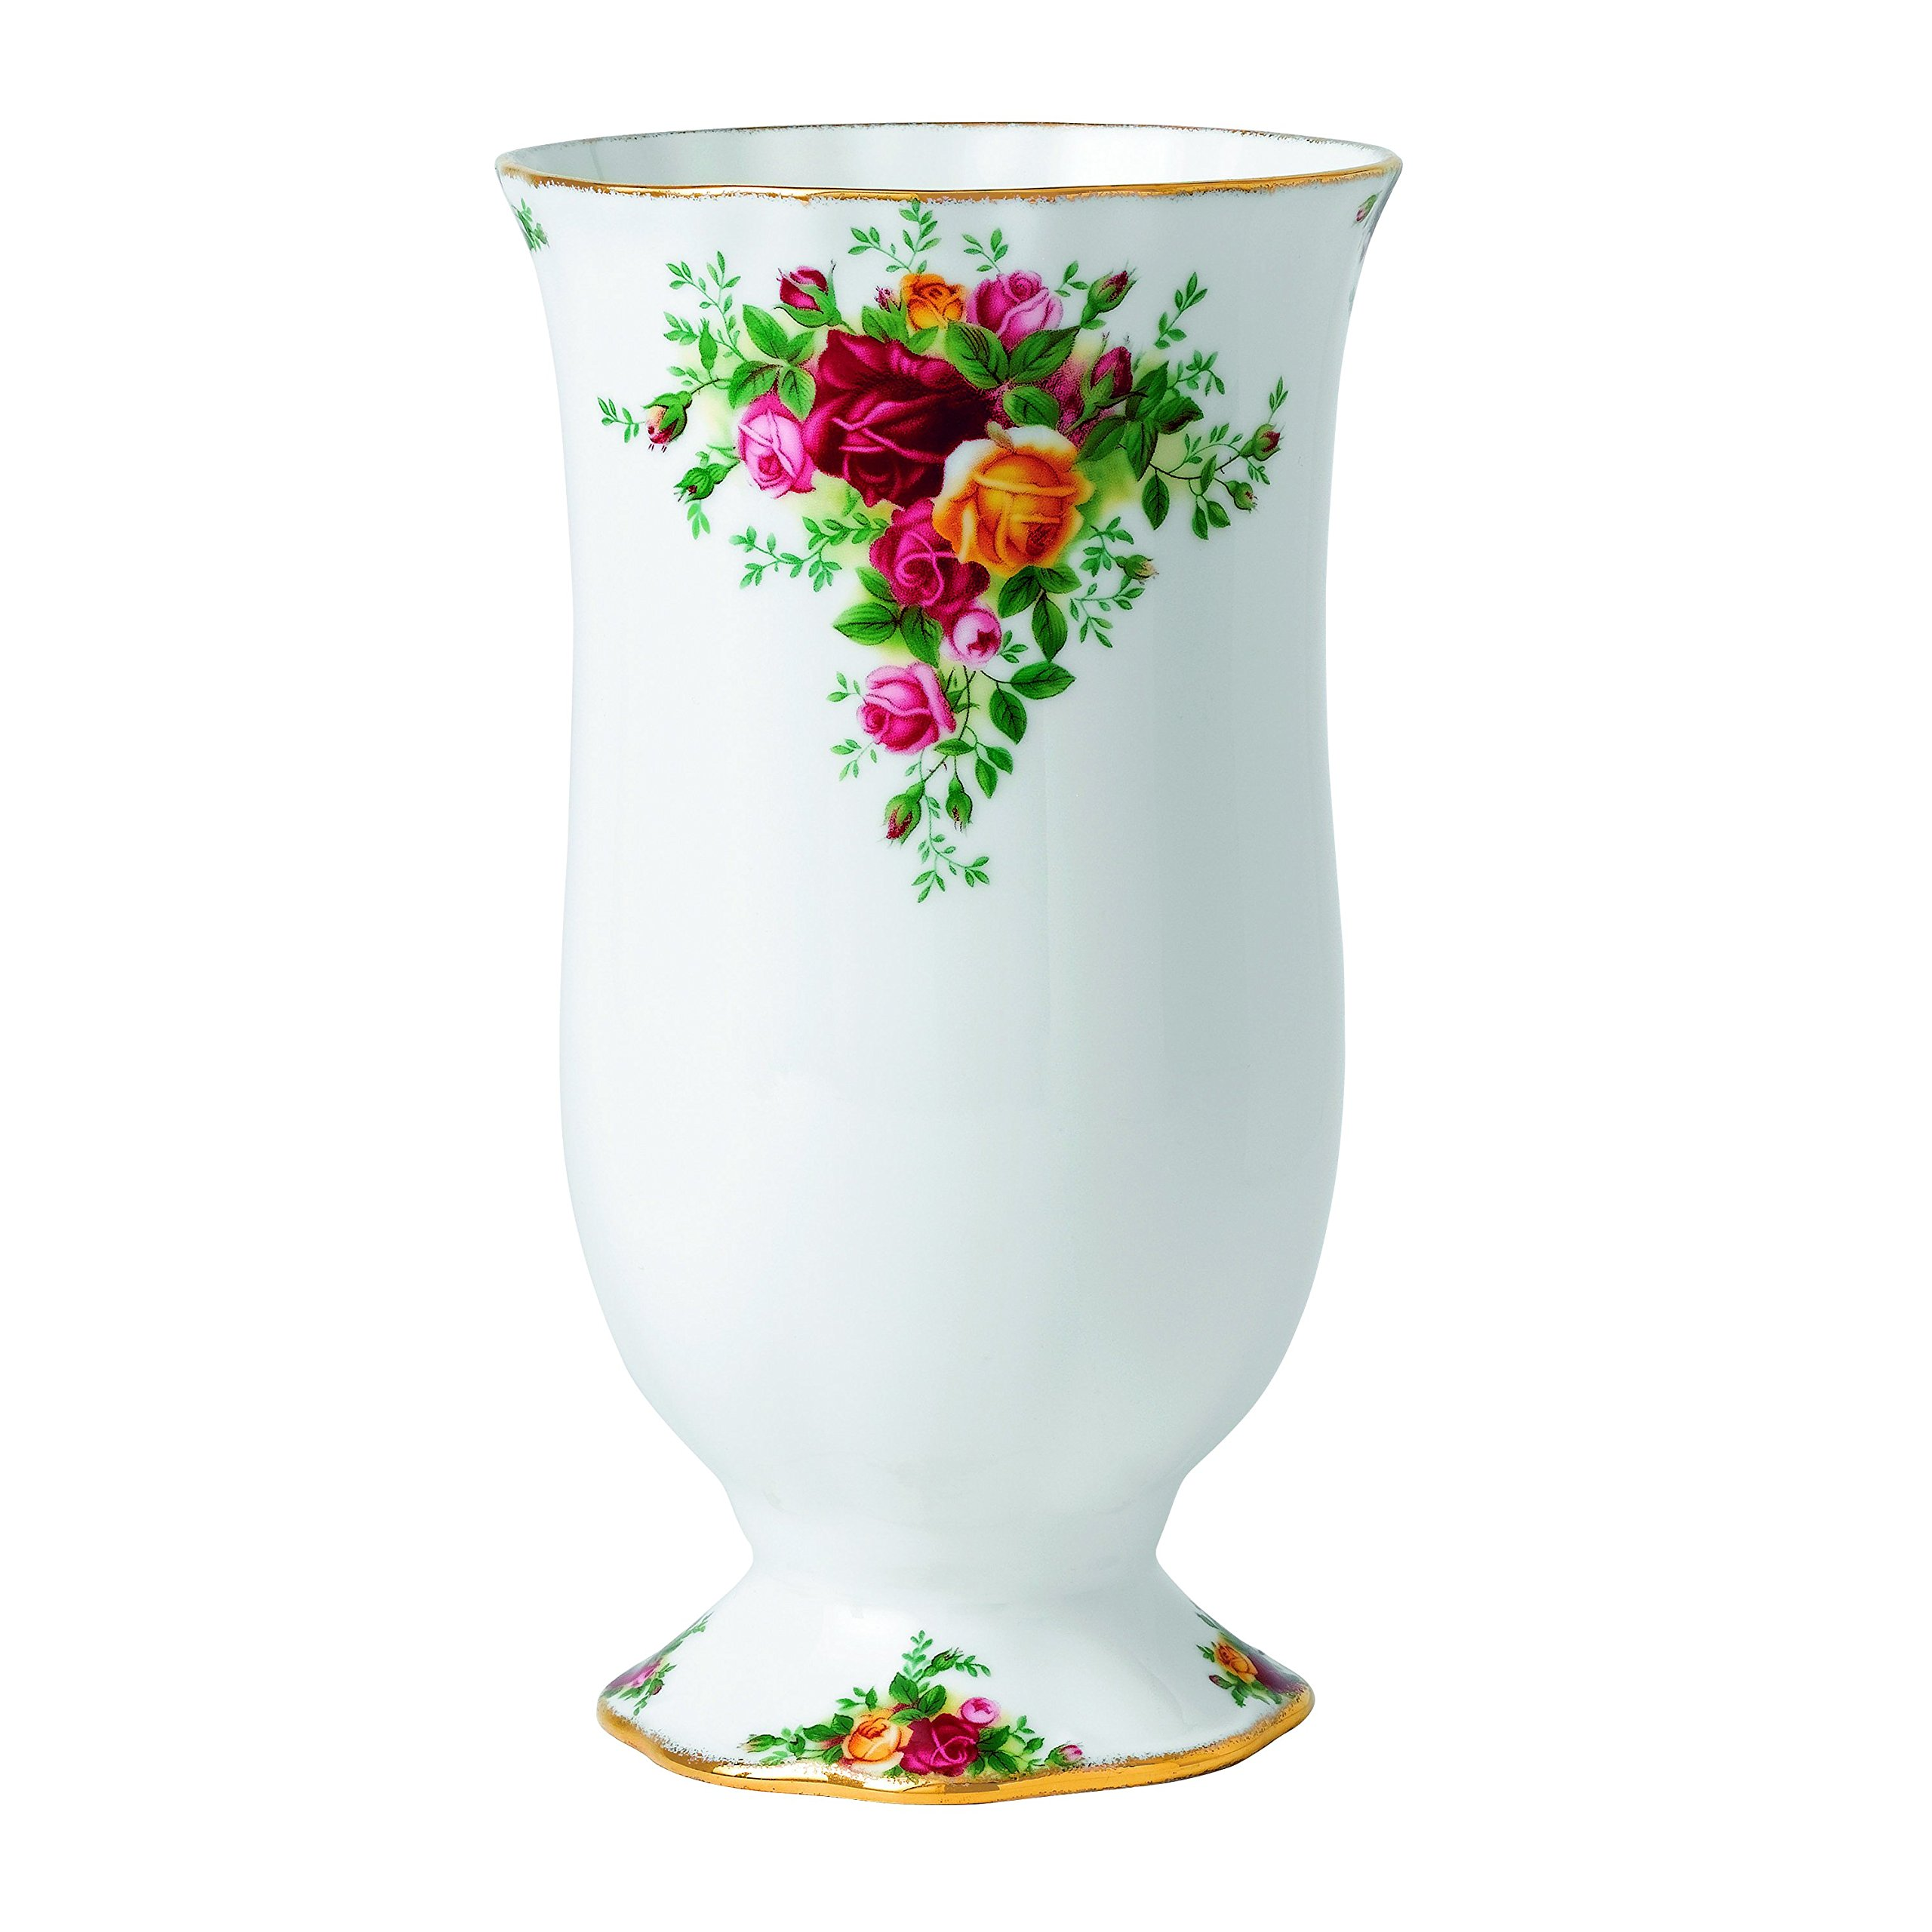 Royal Albert Old Country Roses Large Vase, 8.7-Inch, White